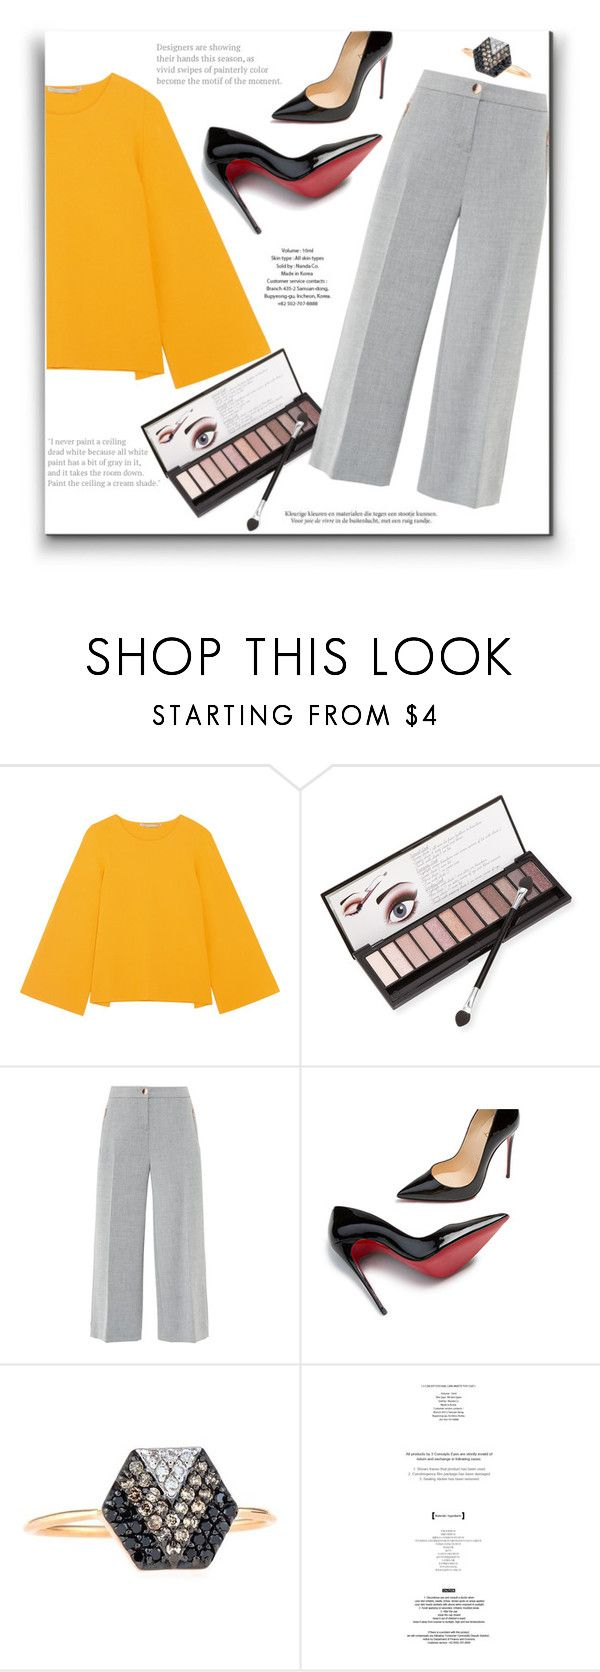 """""""Office day!"""" by alinnas ❤ liked on Polyvore featuring STELLA McCARTNEY, Neiman Marcus, Ted Baker, Christian Louboutin, Kismet by Milka, Haute Hippie and StyleNanda"""